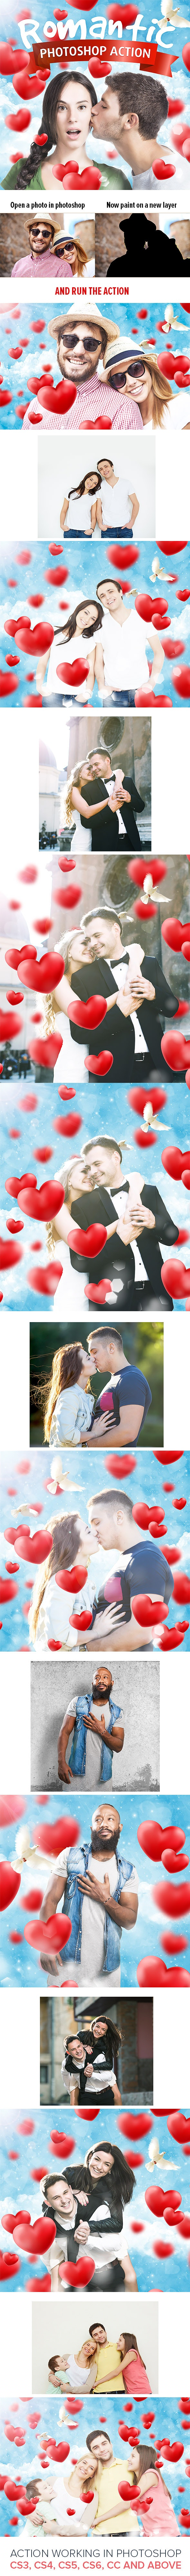 Romantic Photoshop Action - Photo Effects Actions